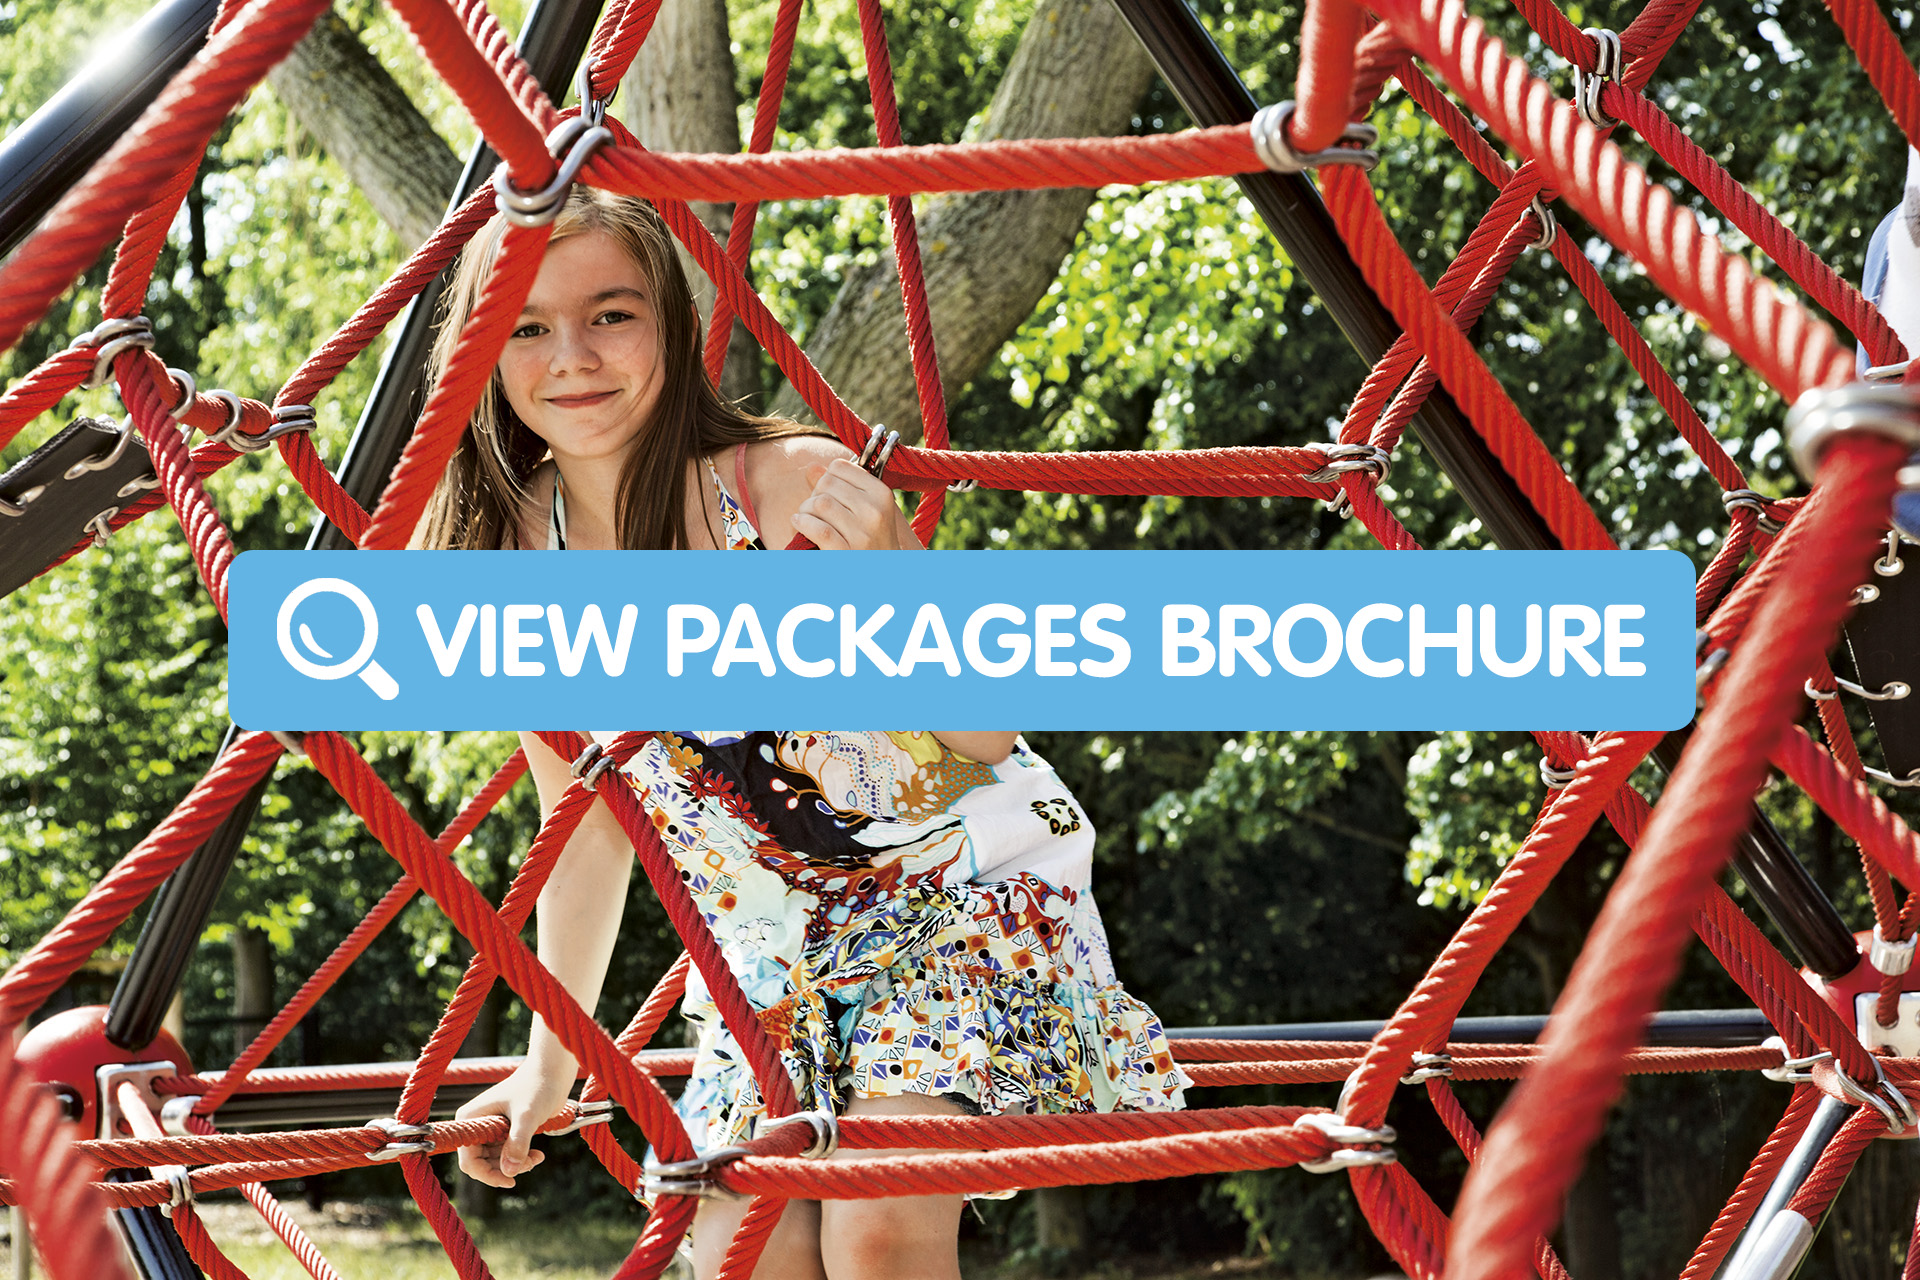 View packages brochure